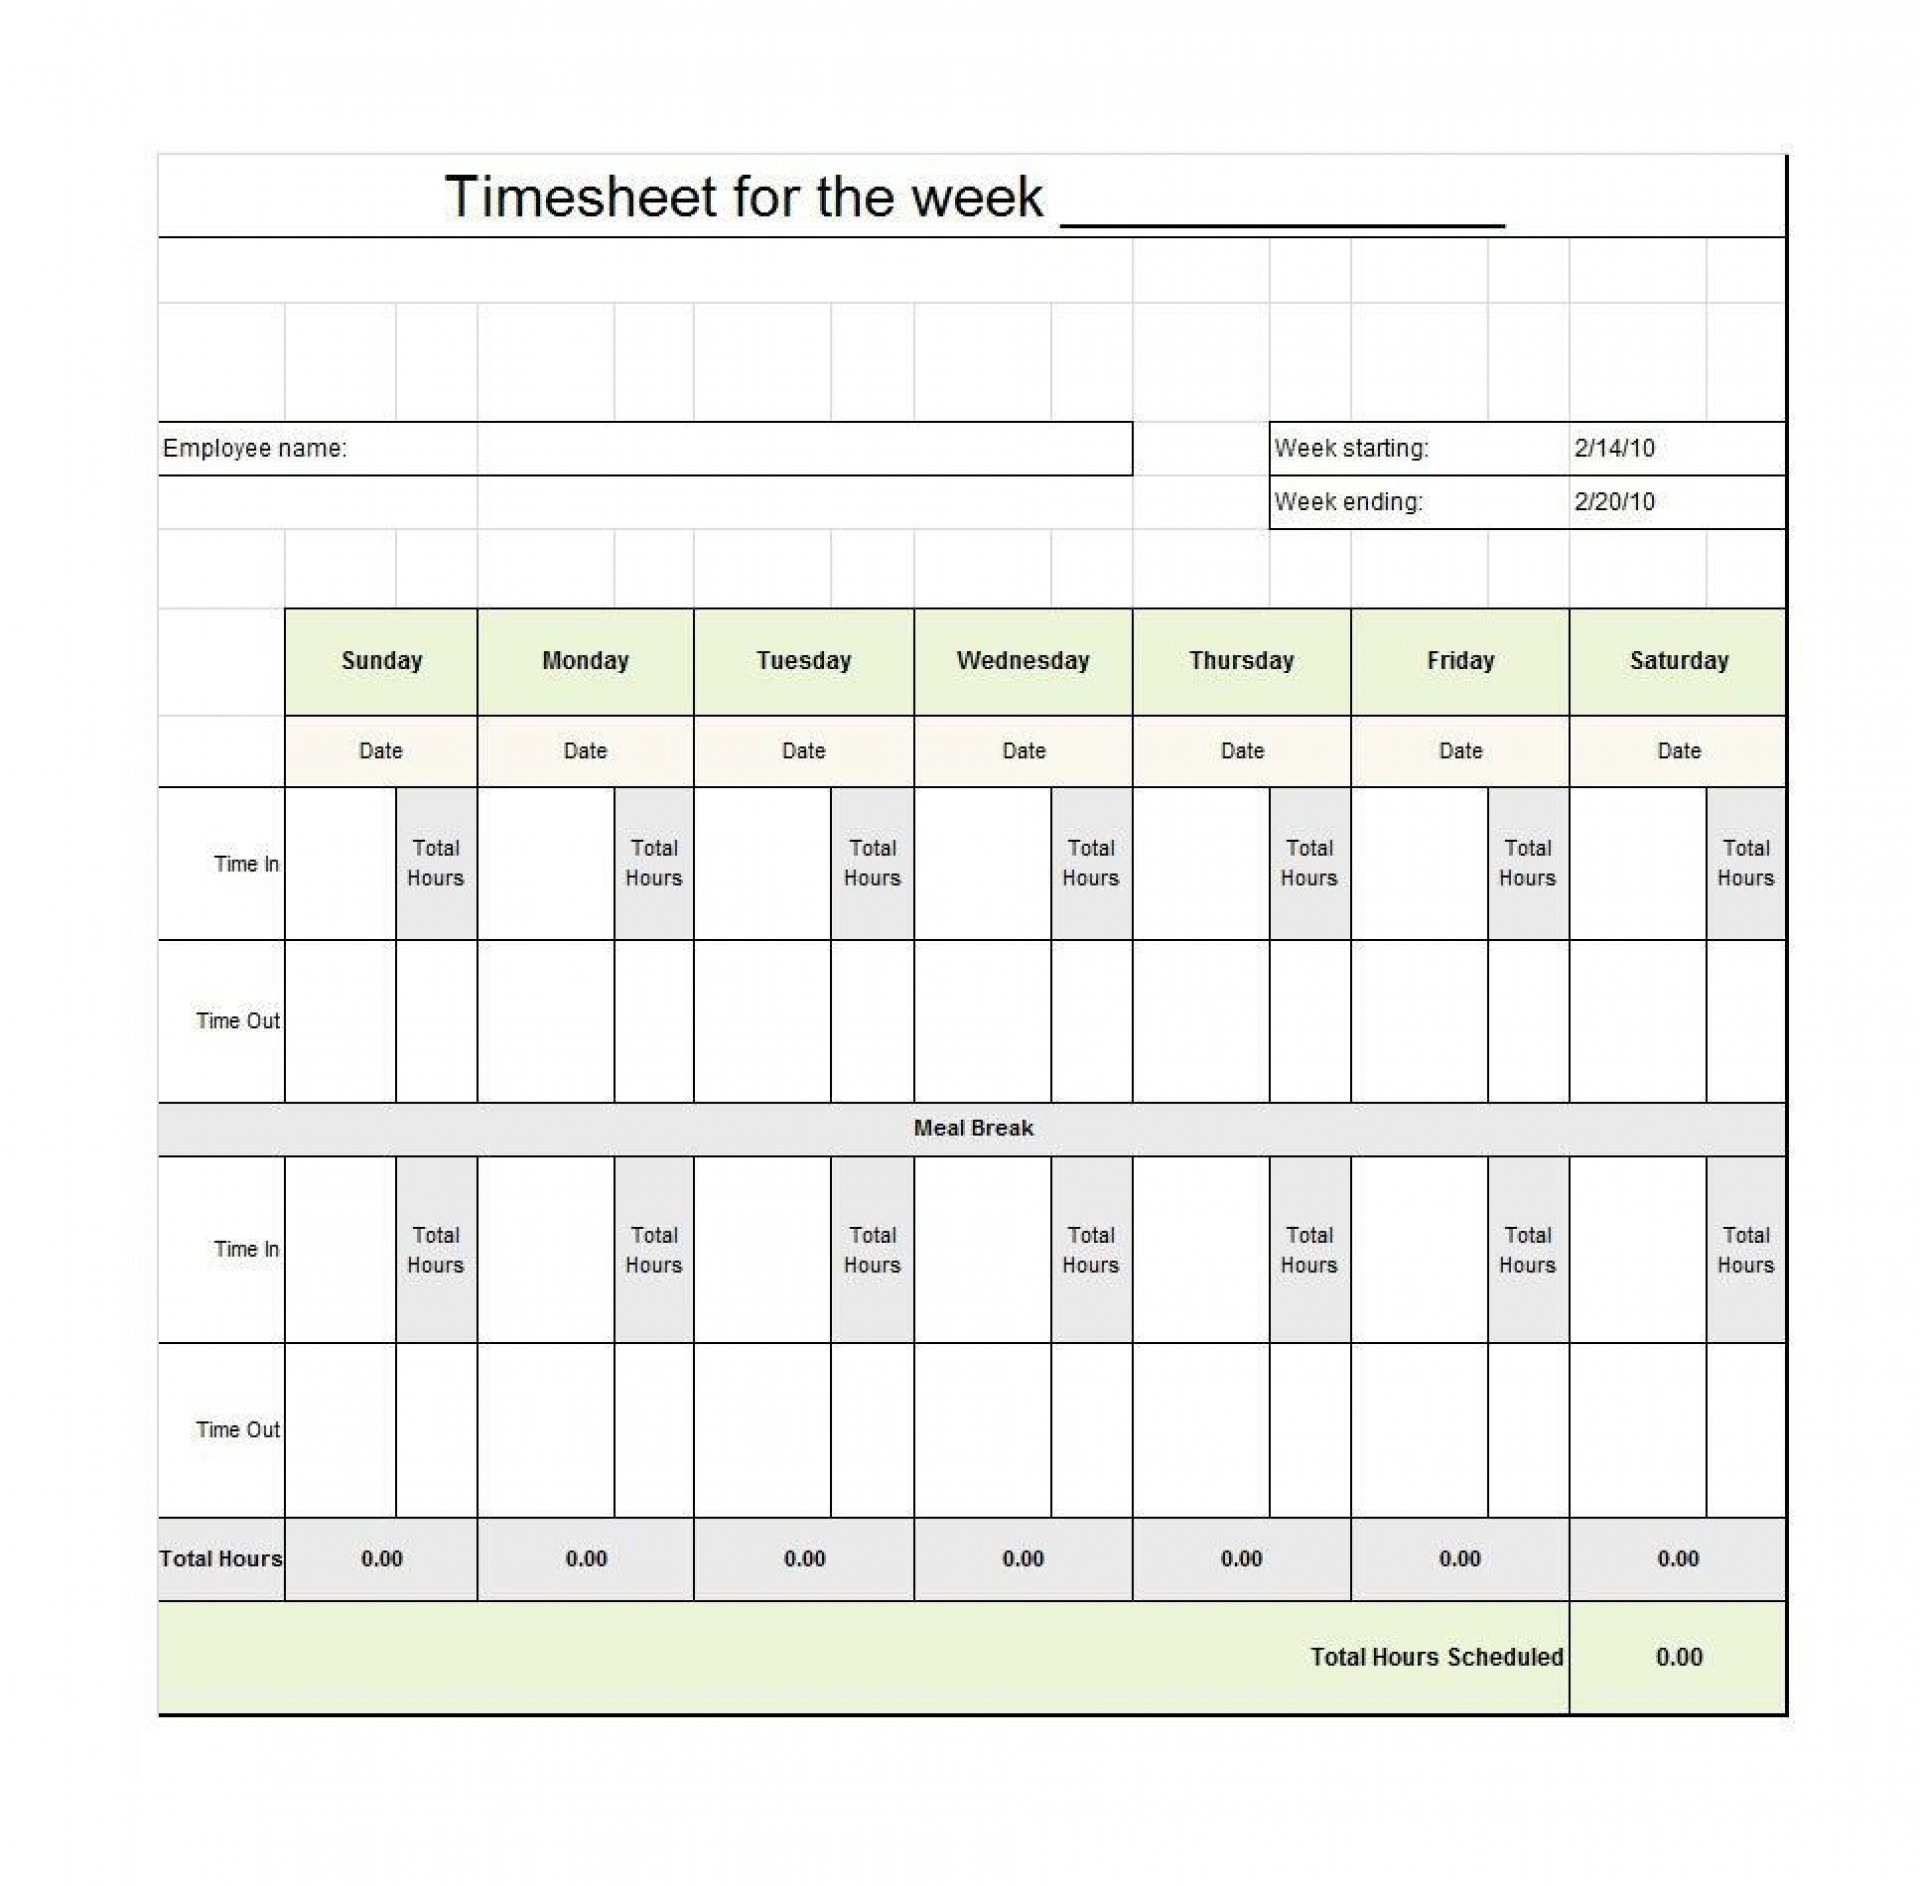 009 Staggering Free Employee Sign In Sheet Template Inspiration  Schedule Pdf Weekly Timesheet Printable1920